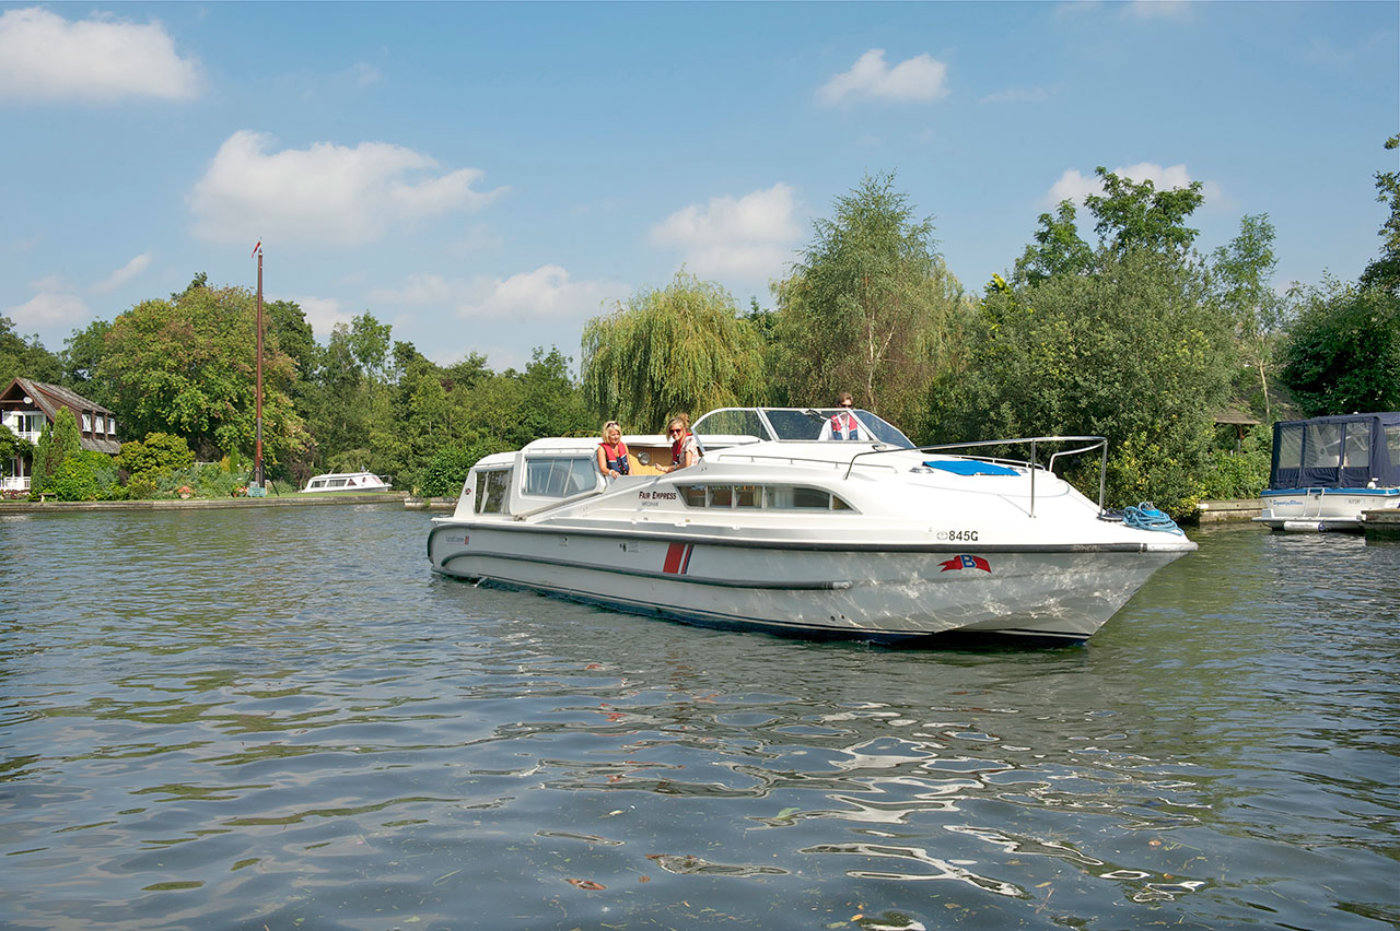 fair empress broads boating holidays